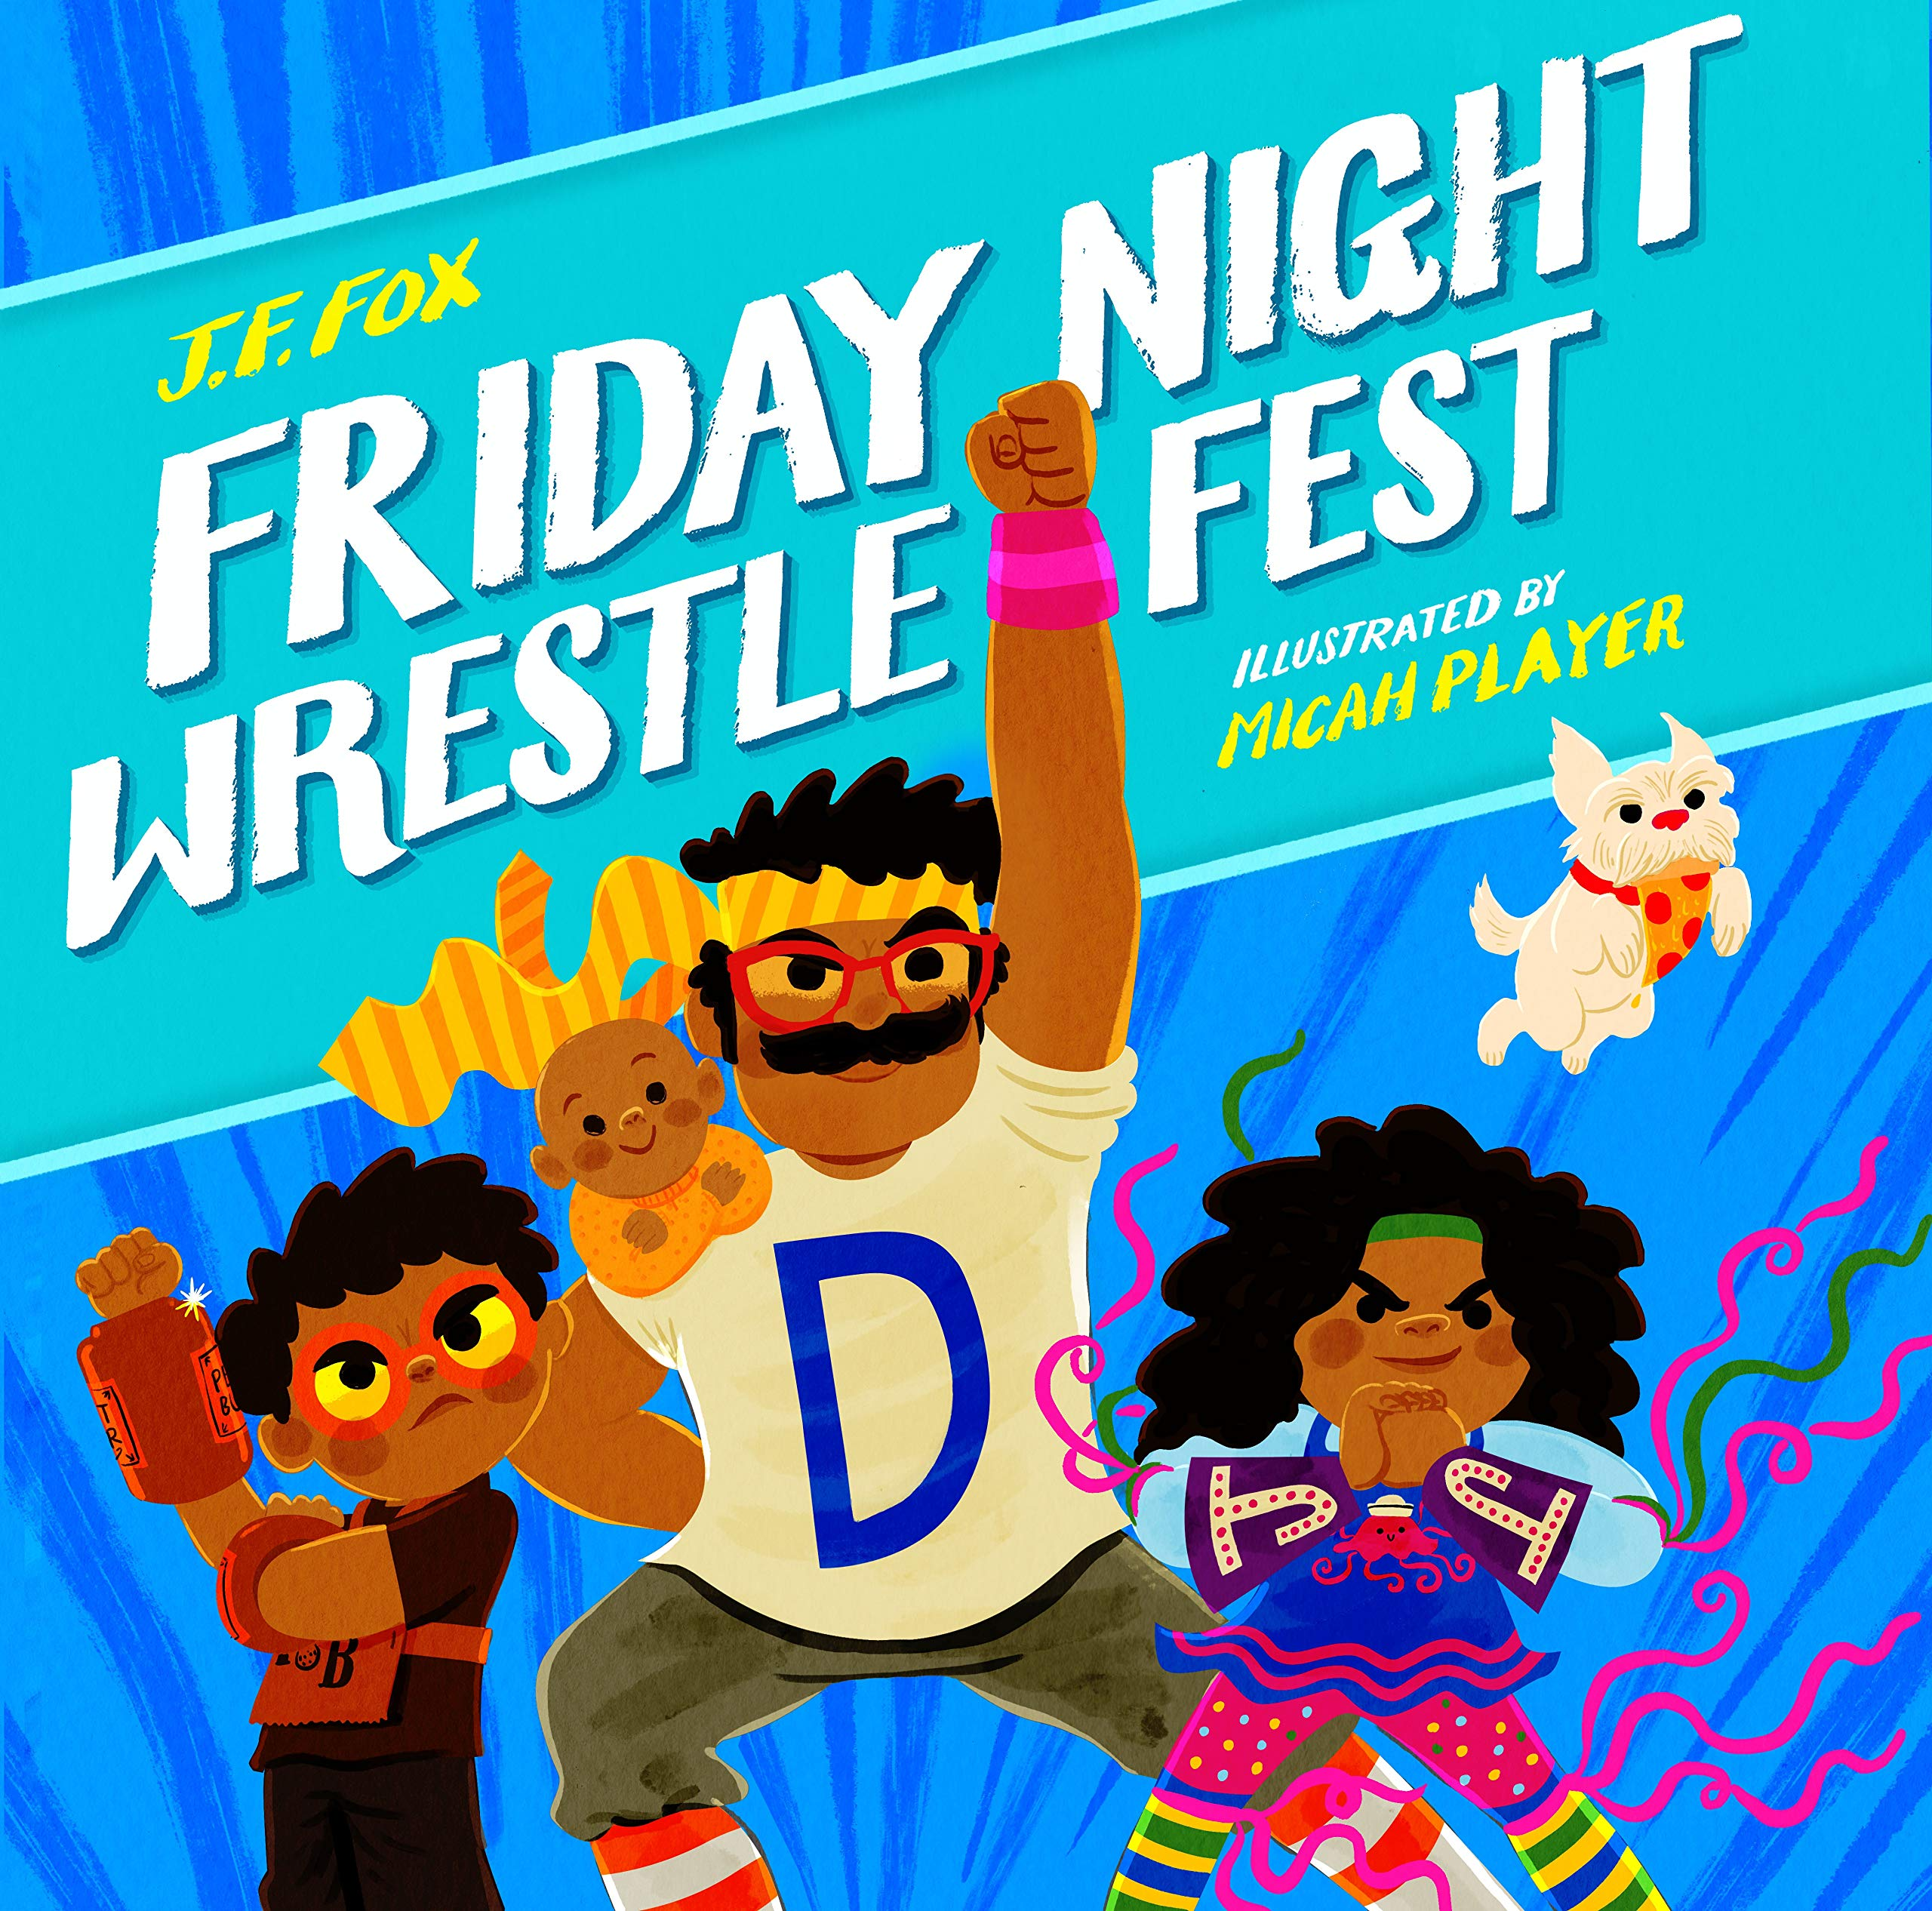 Friday Night Wrestlefest by J.F. Fox